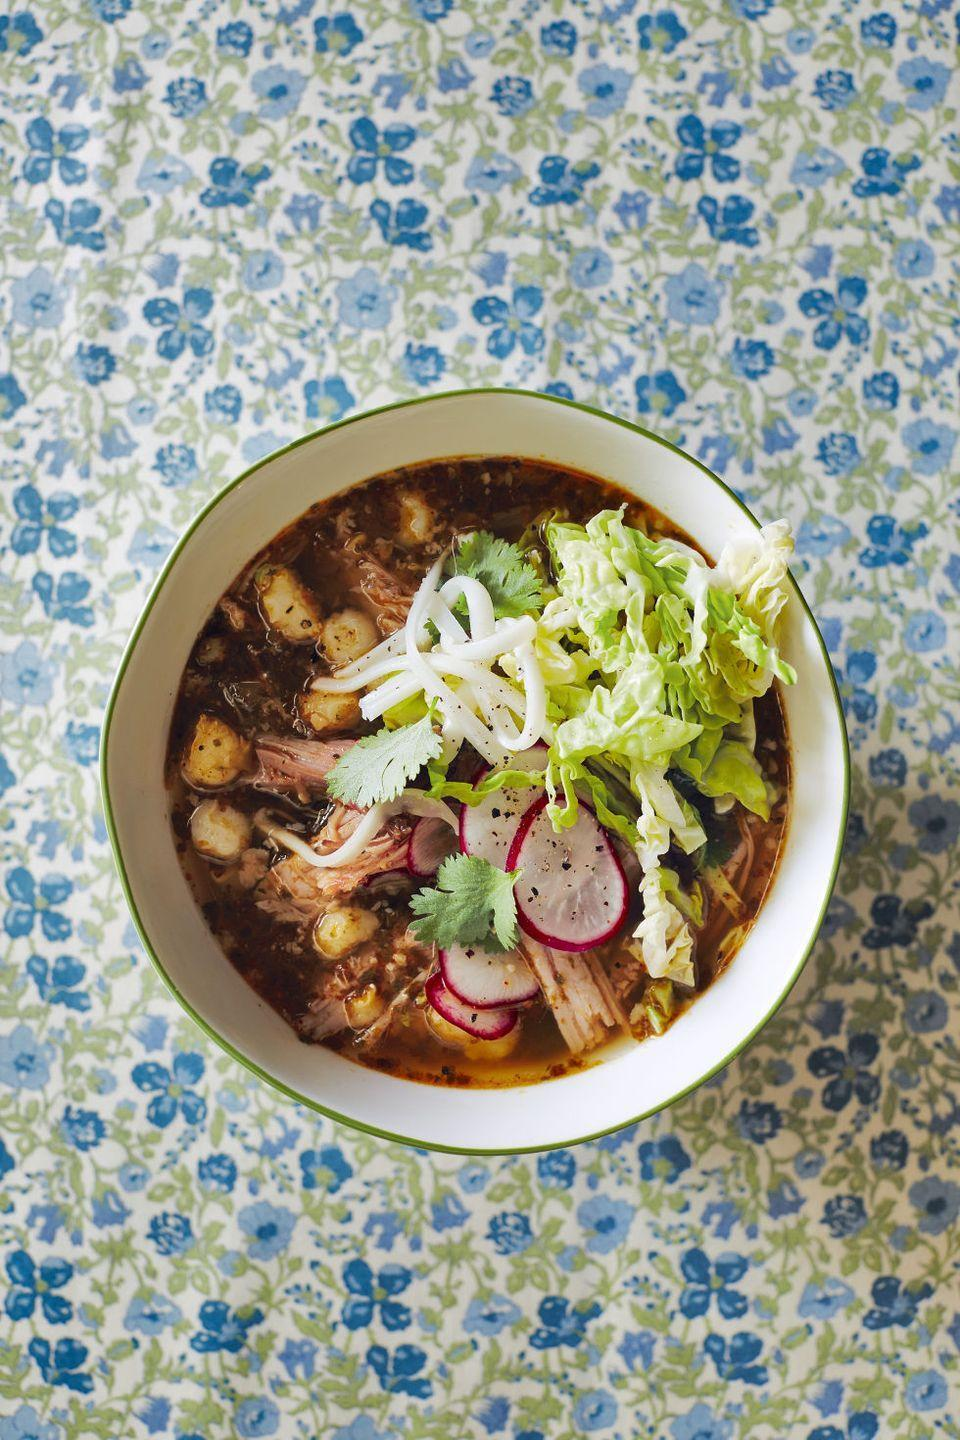 """<p>Warm up a cool night with this flavorful and filling pork stew.</p><p><strong><a href=""""https://www.countryliving.com/food-drinks/recipes/a5795/spicy-pork-posole-recipe-clx1014/"""" rel=""""nofollow noopener"""" target=""""_blank"""" data-ylk=""""slk:Get the recipe"""" class=""""link rapid-noclick-resp"""">Get the recipe</a>.</strong></p>"""